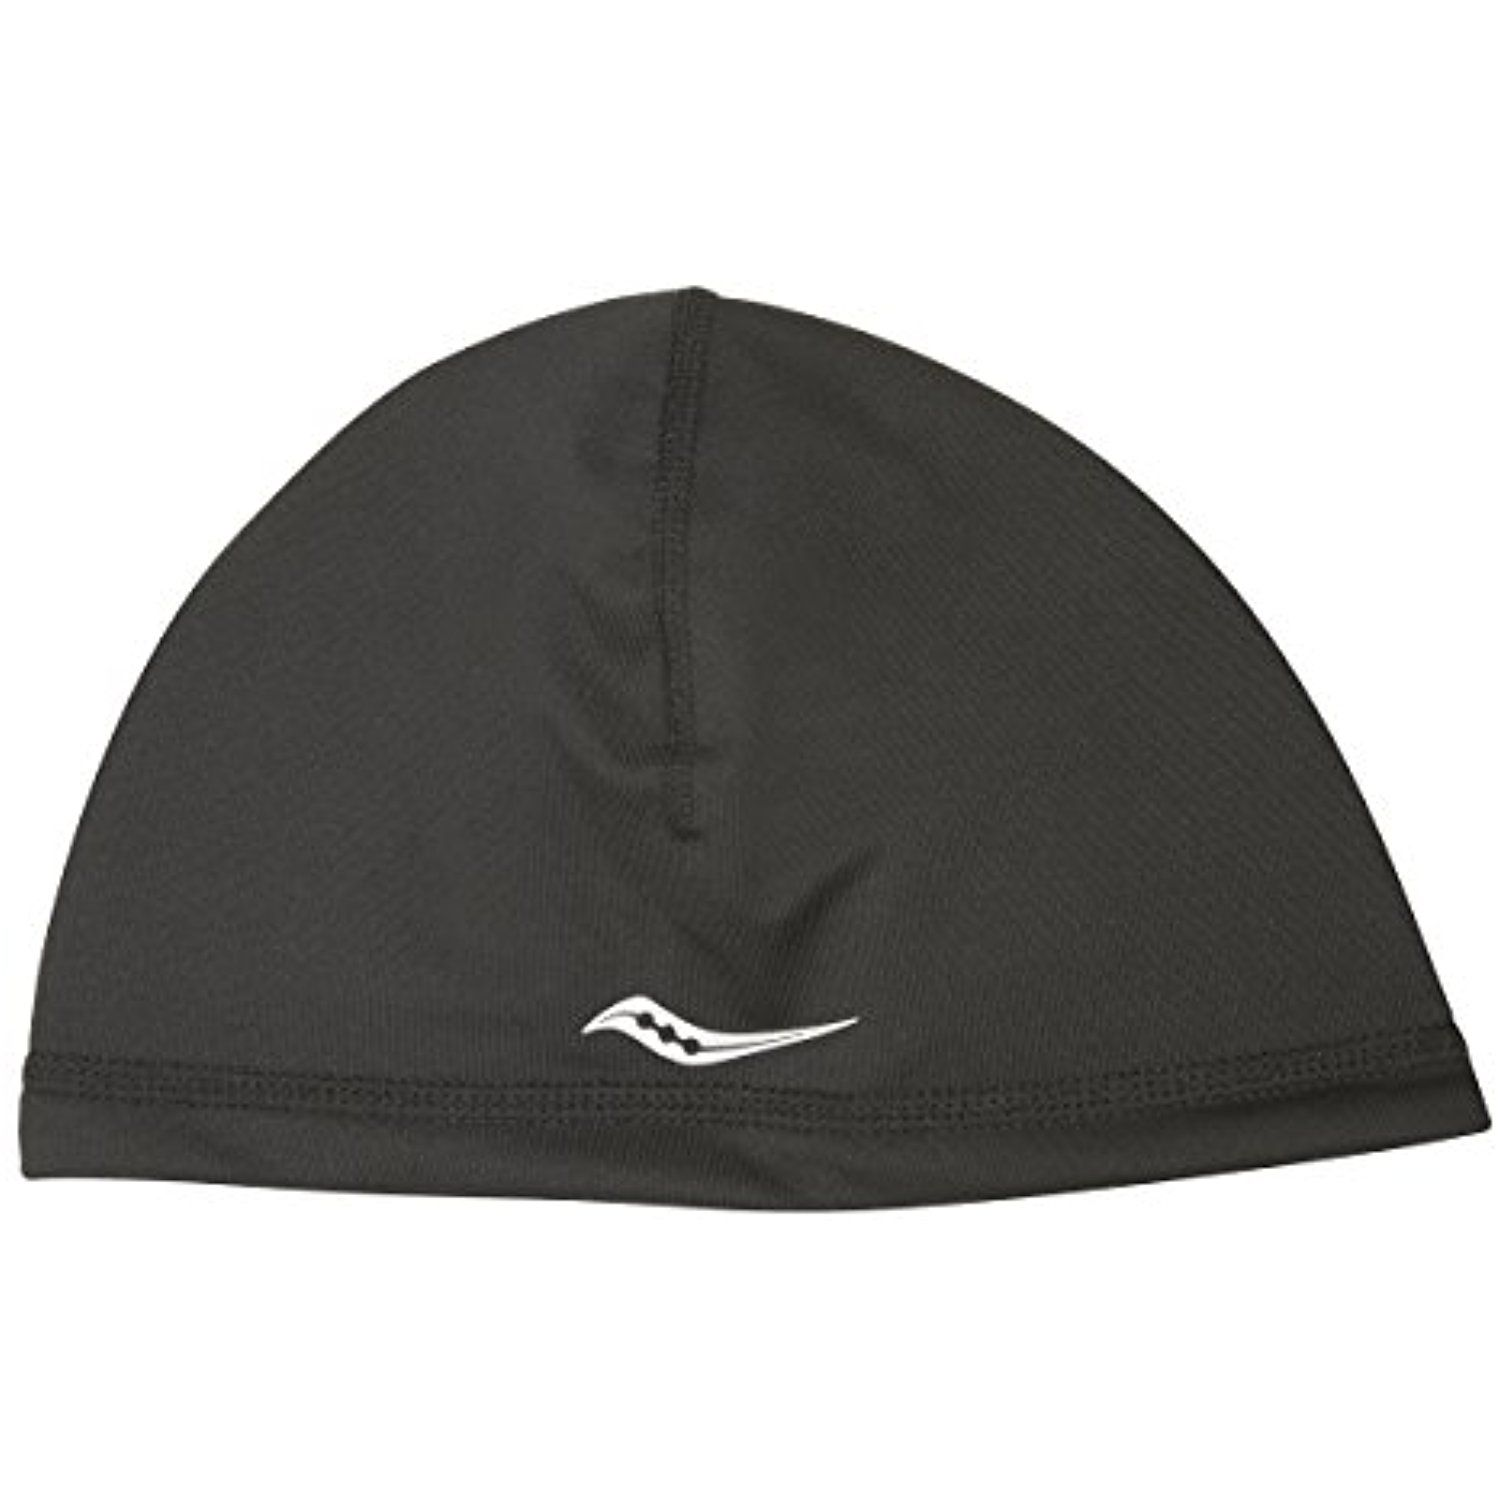 cf163439 Saucony Unisex Omni Skull Cap >>> Check out the image by visiting the link.  (This is an affiliate link) #Accessories